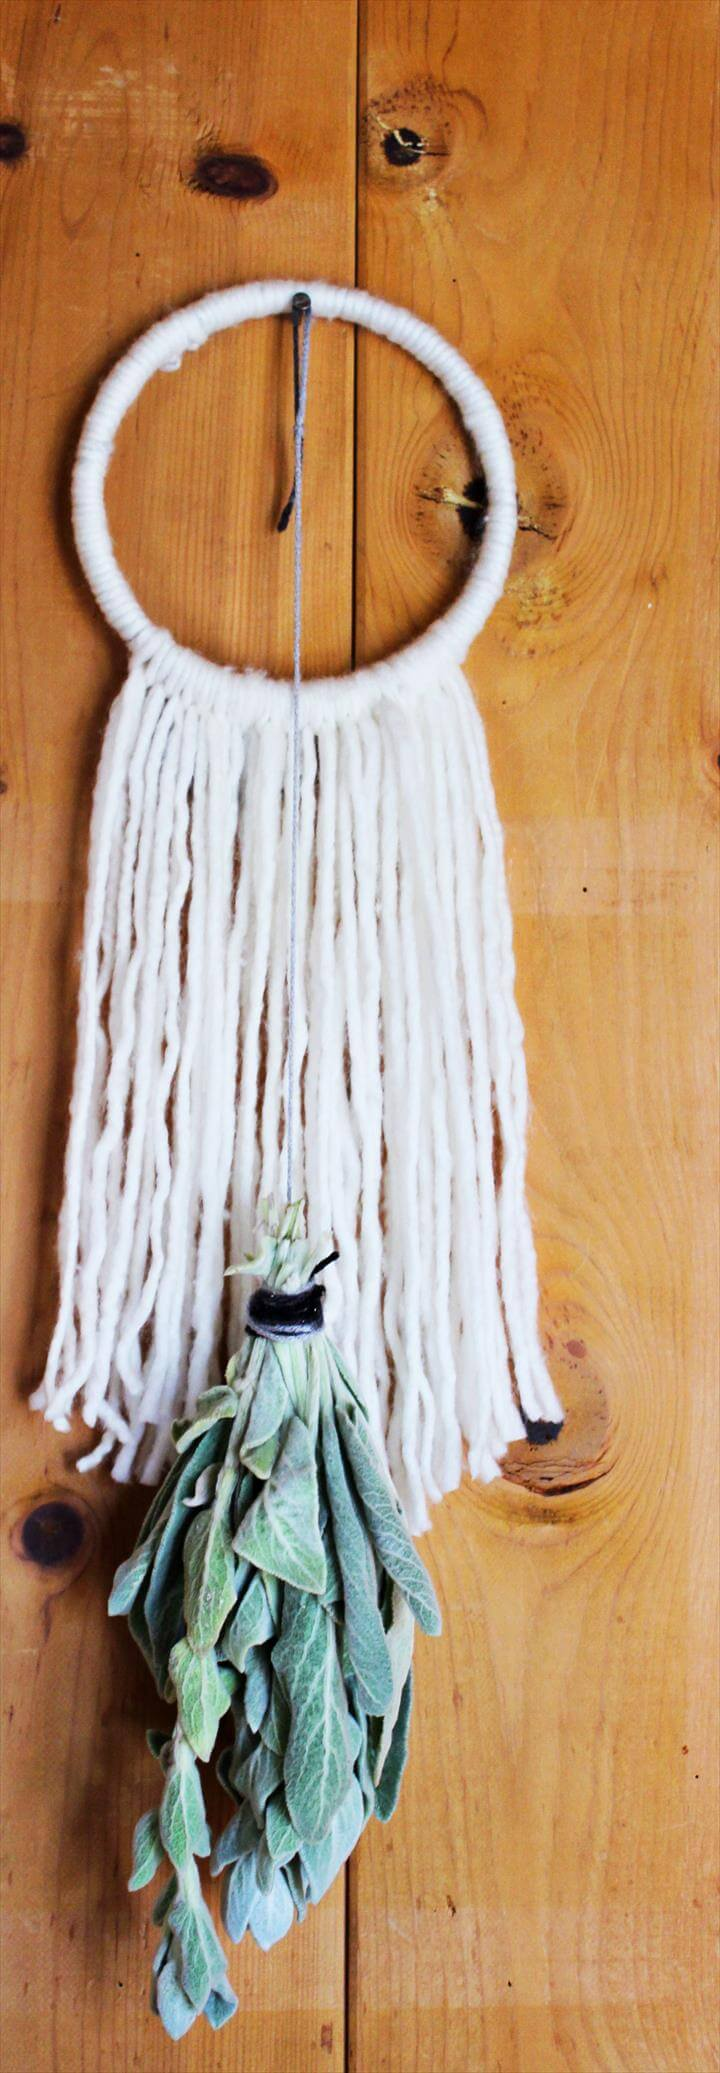 Super Easy DIY Yarn Wall Hanging